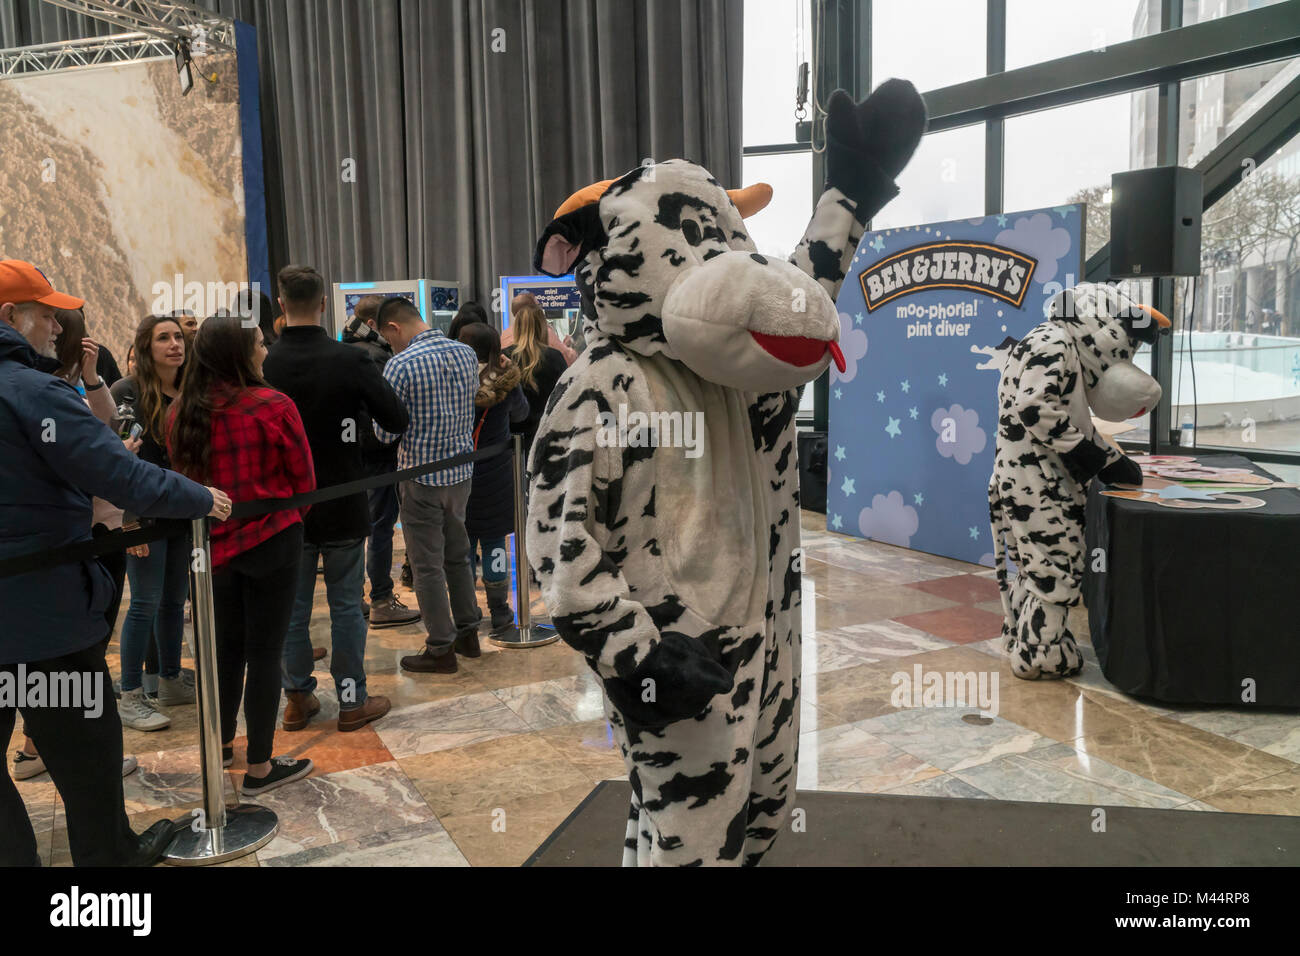 Non-GMO cow mascots amuse the crowds in the Brookfield Place Winter Garden as part of Ben & Jerry's New - Stock Image